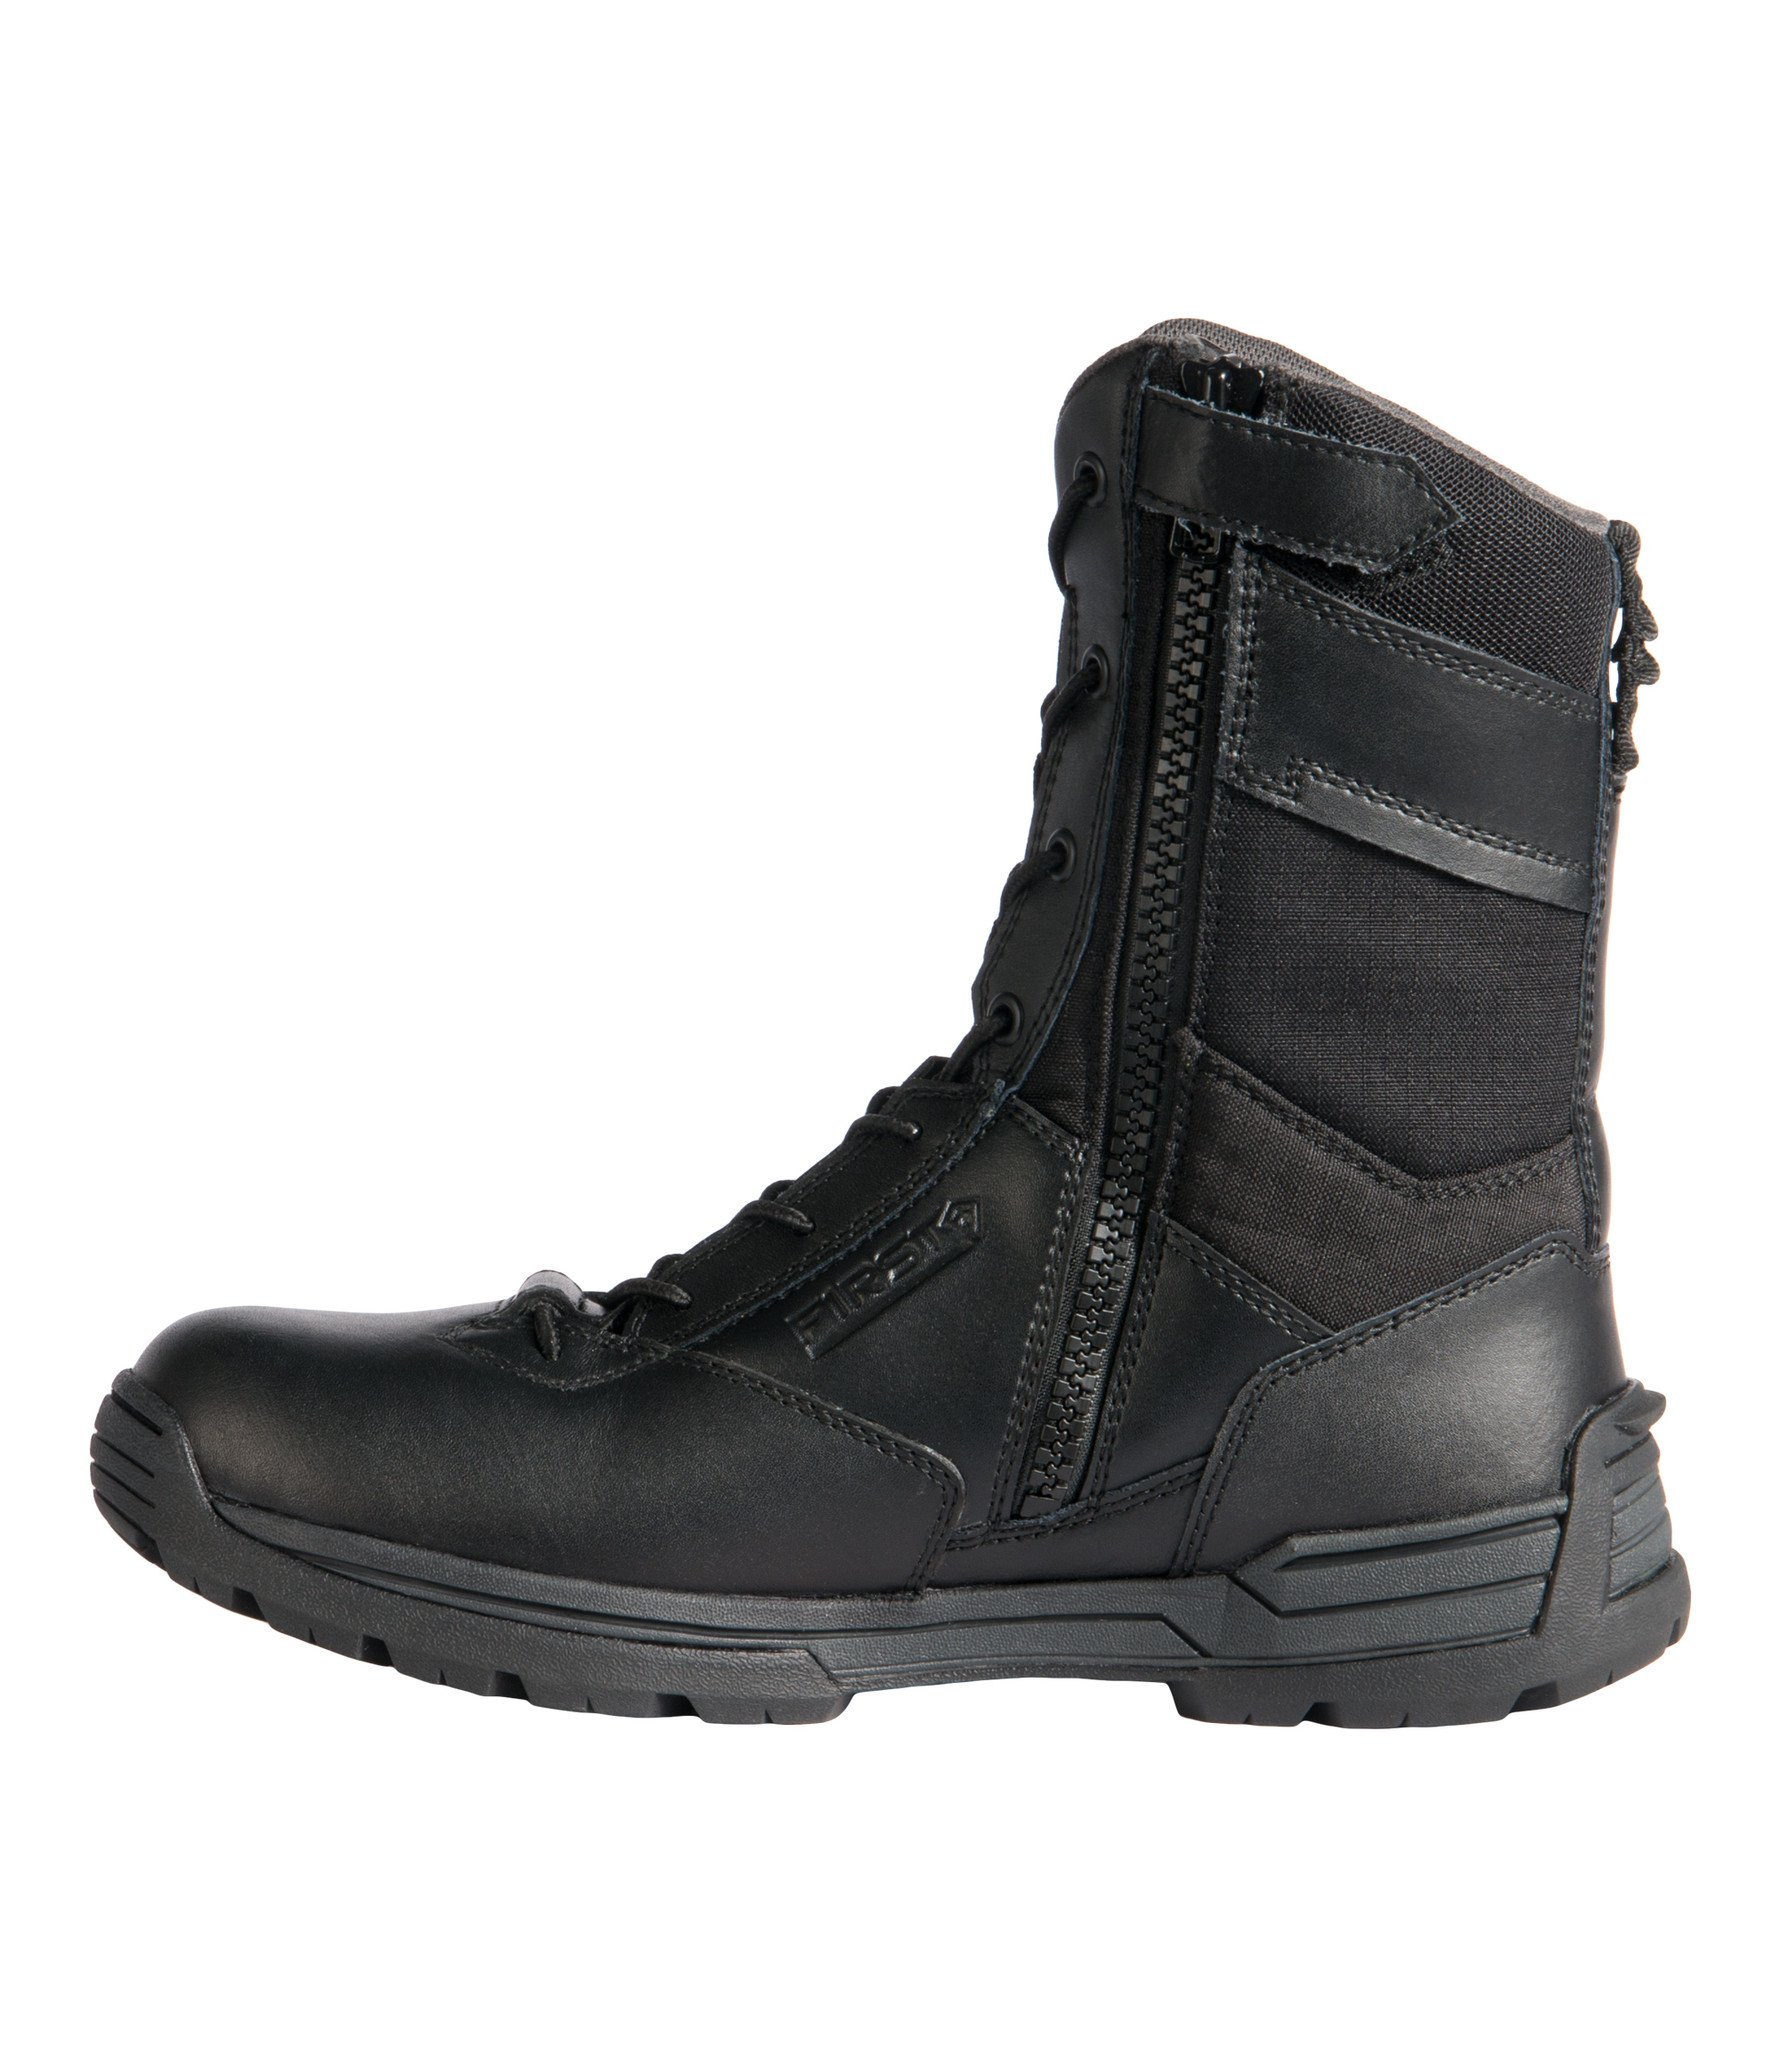 "Men's 8"" Side Zip Duty Boot (Black)"